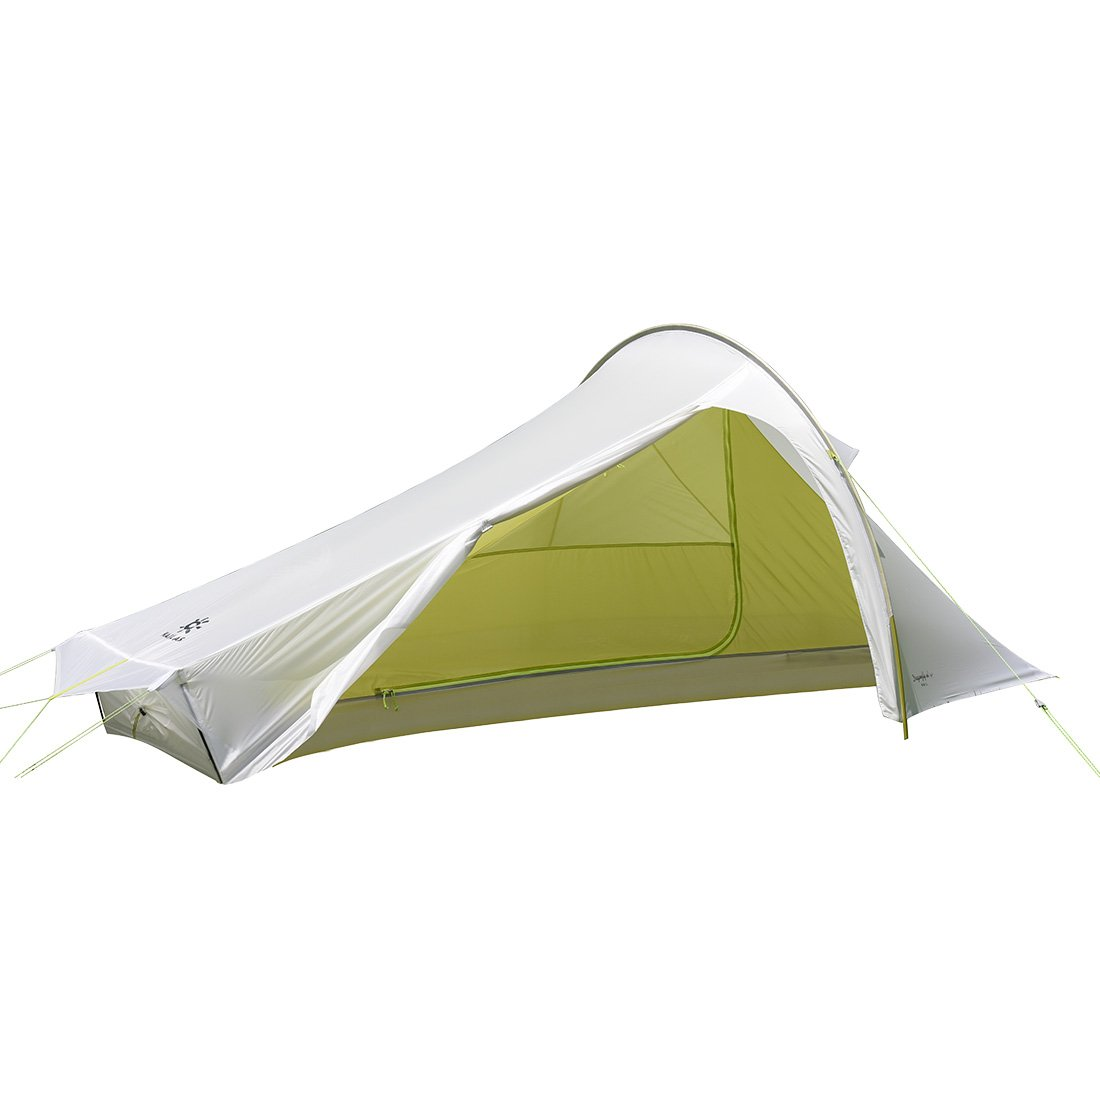 KAILAS Waterproof Camping Tent 1-2 Person Double Layer Ultralight Backpacking Tens for Outdoors Hiking Trekking